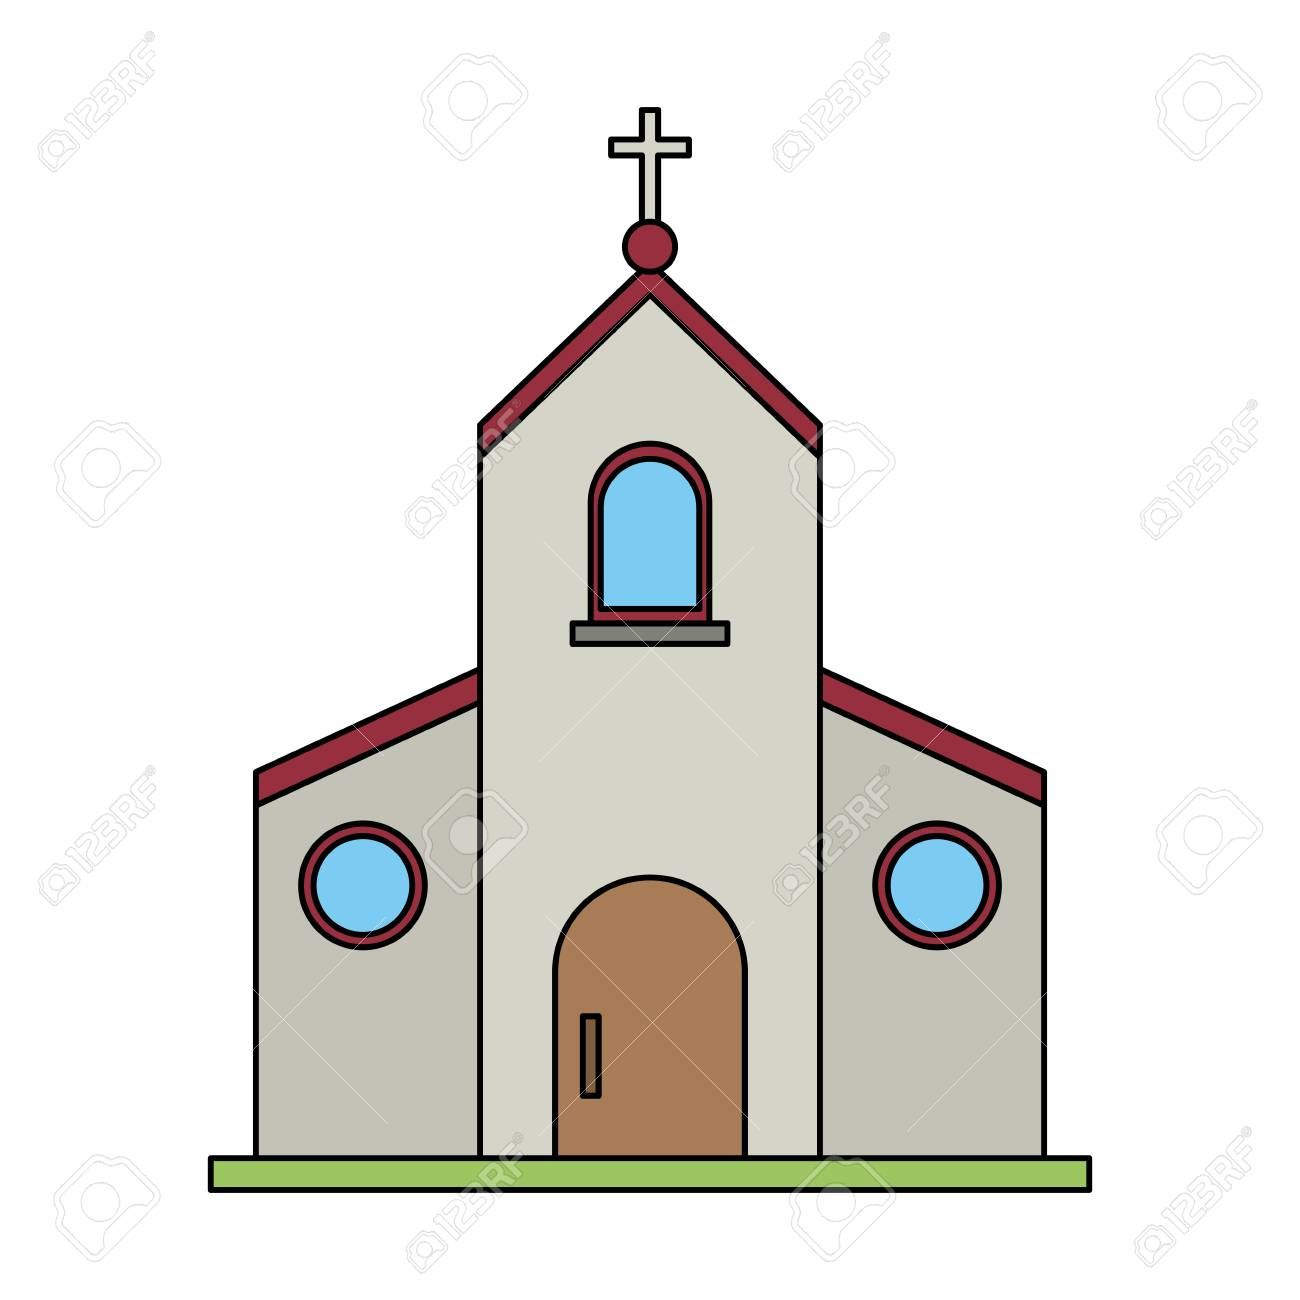 Color Image Church Building With Cross Vector Illustration Royalty ...